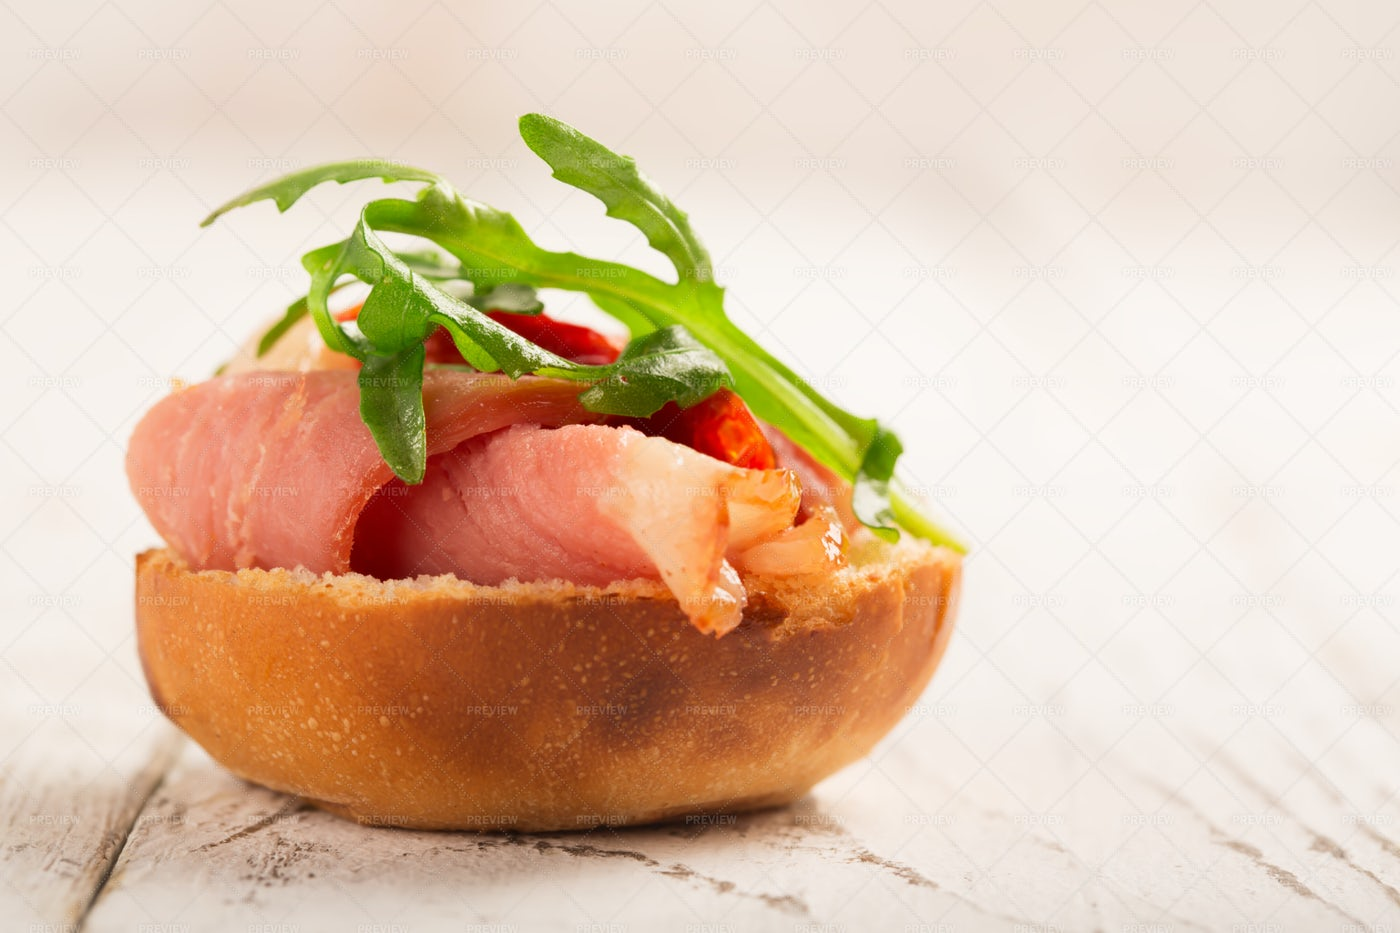 Duck Breast And Bread: Stock Photos